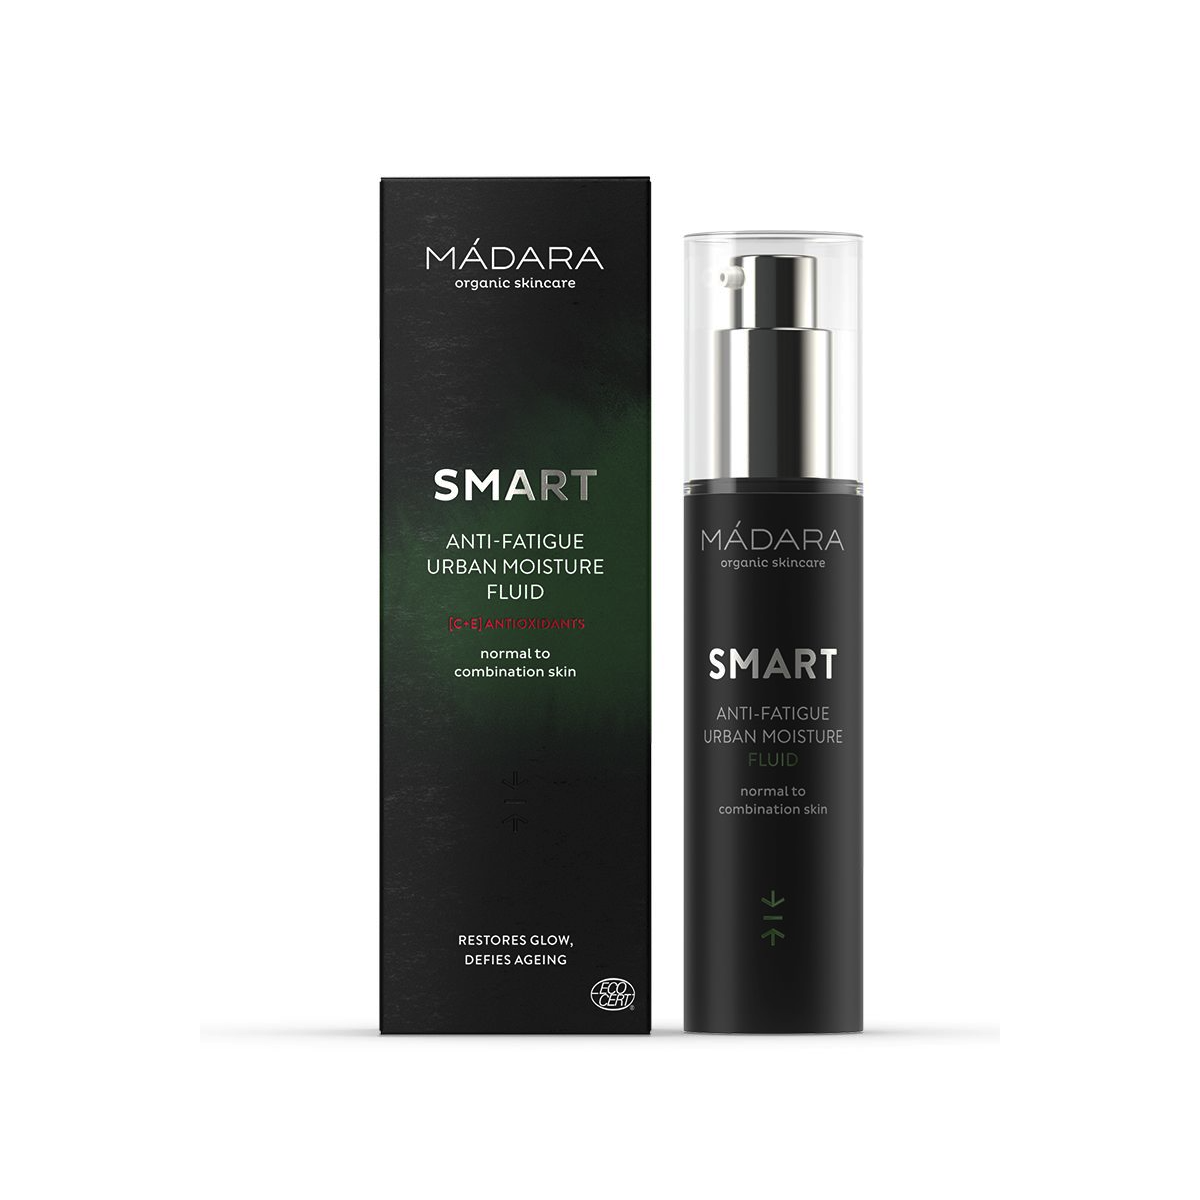 MÁDARA SMART Anti-Fatigue Urban Moisture Fluid